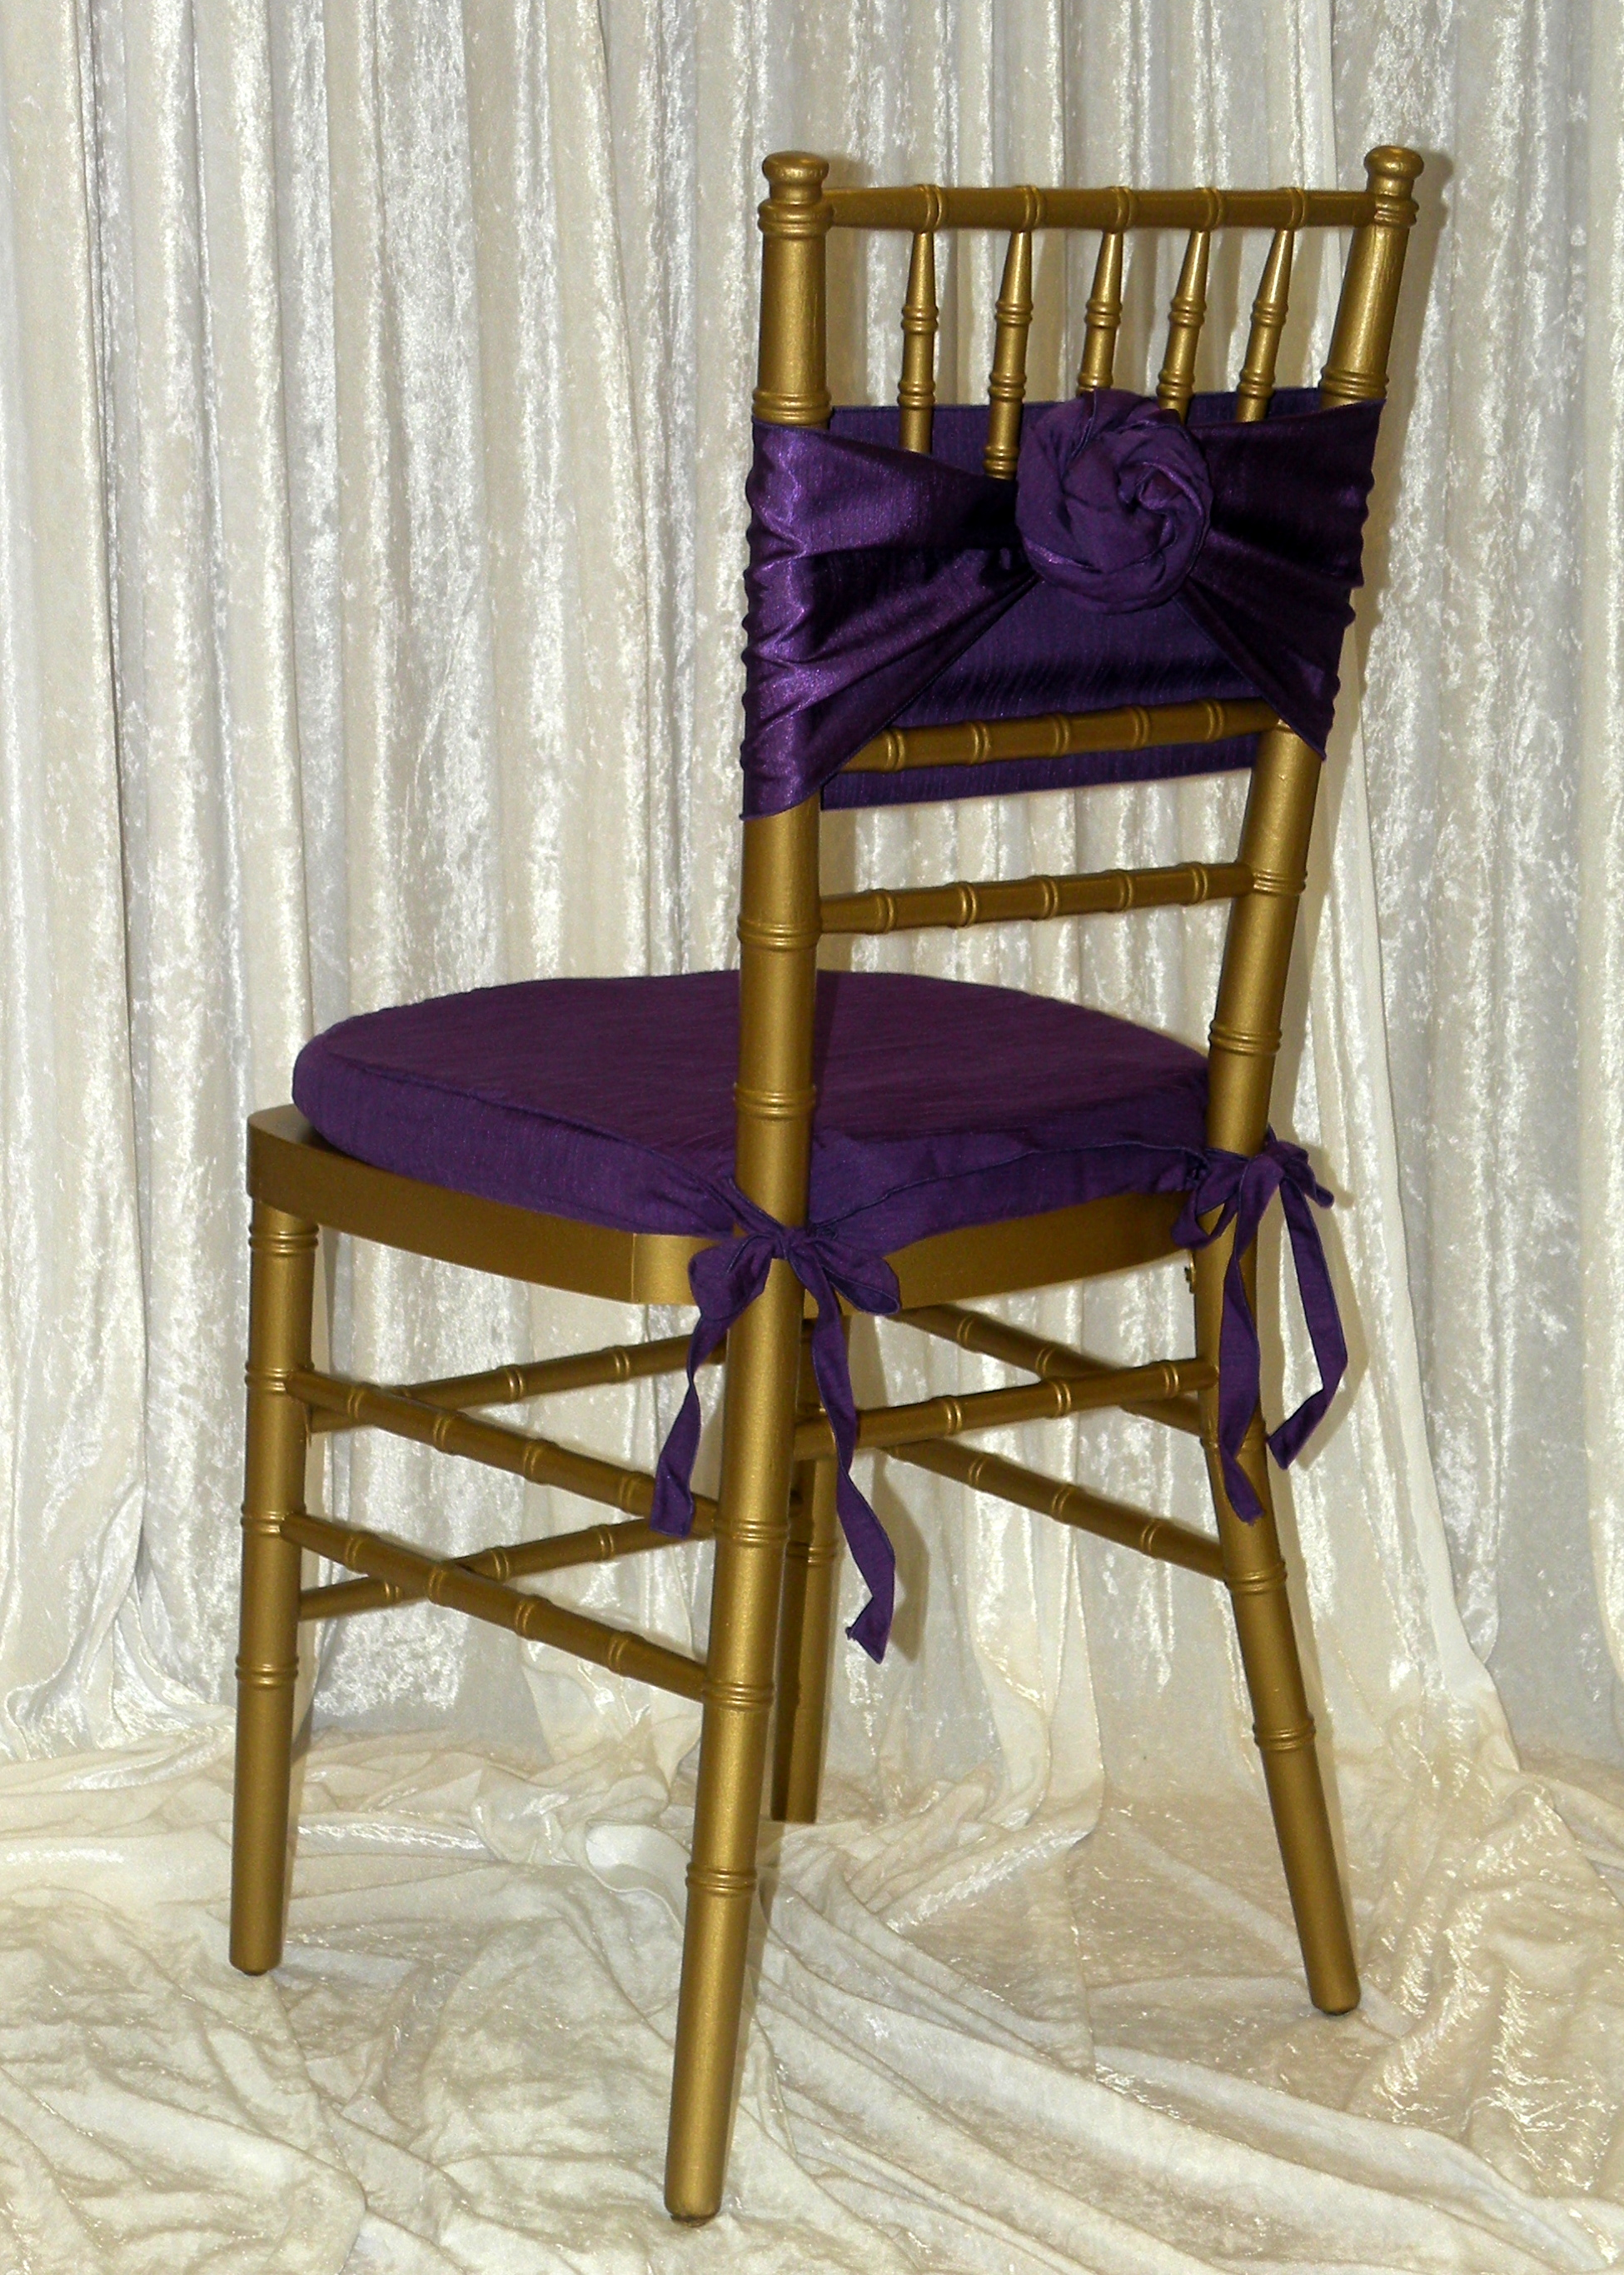 chair cover rental austin tx adams manufacturing adirondack chairs ties premiere events